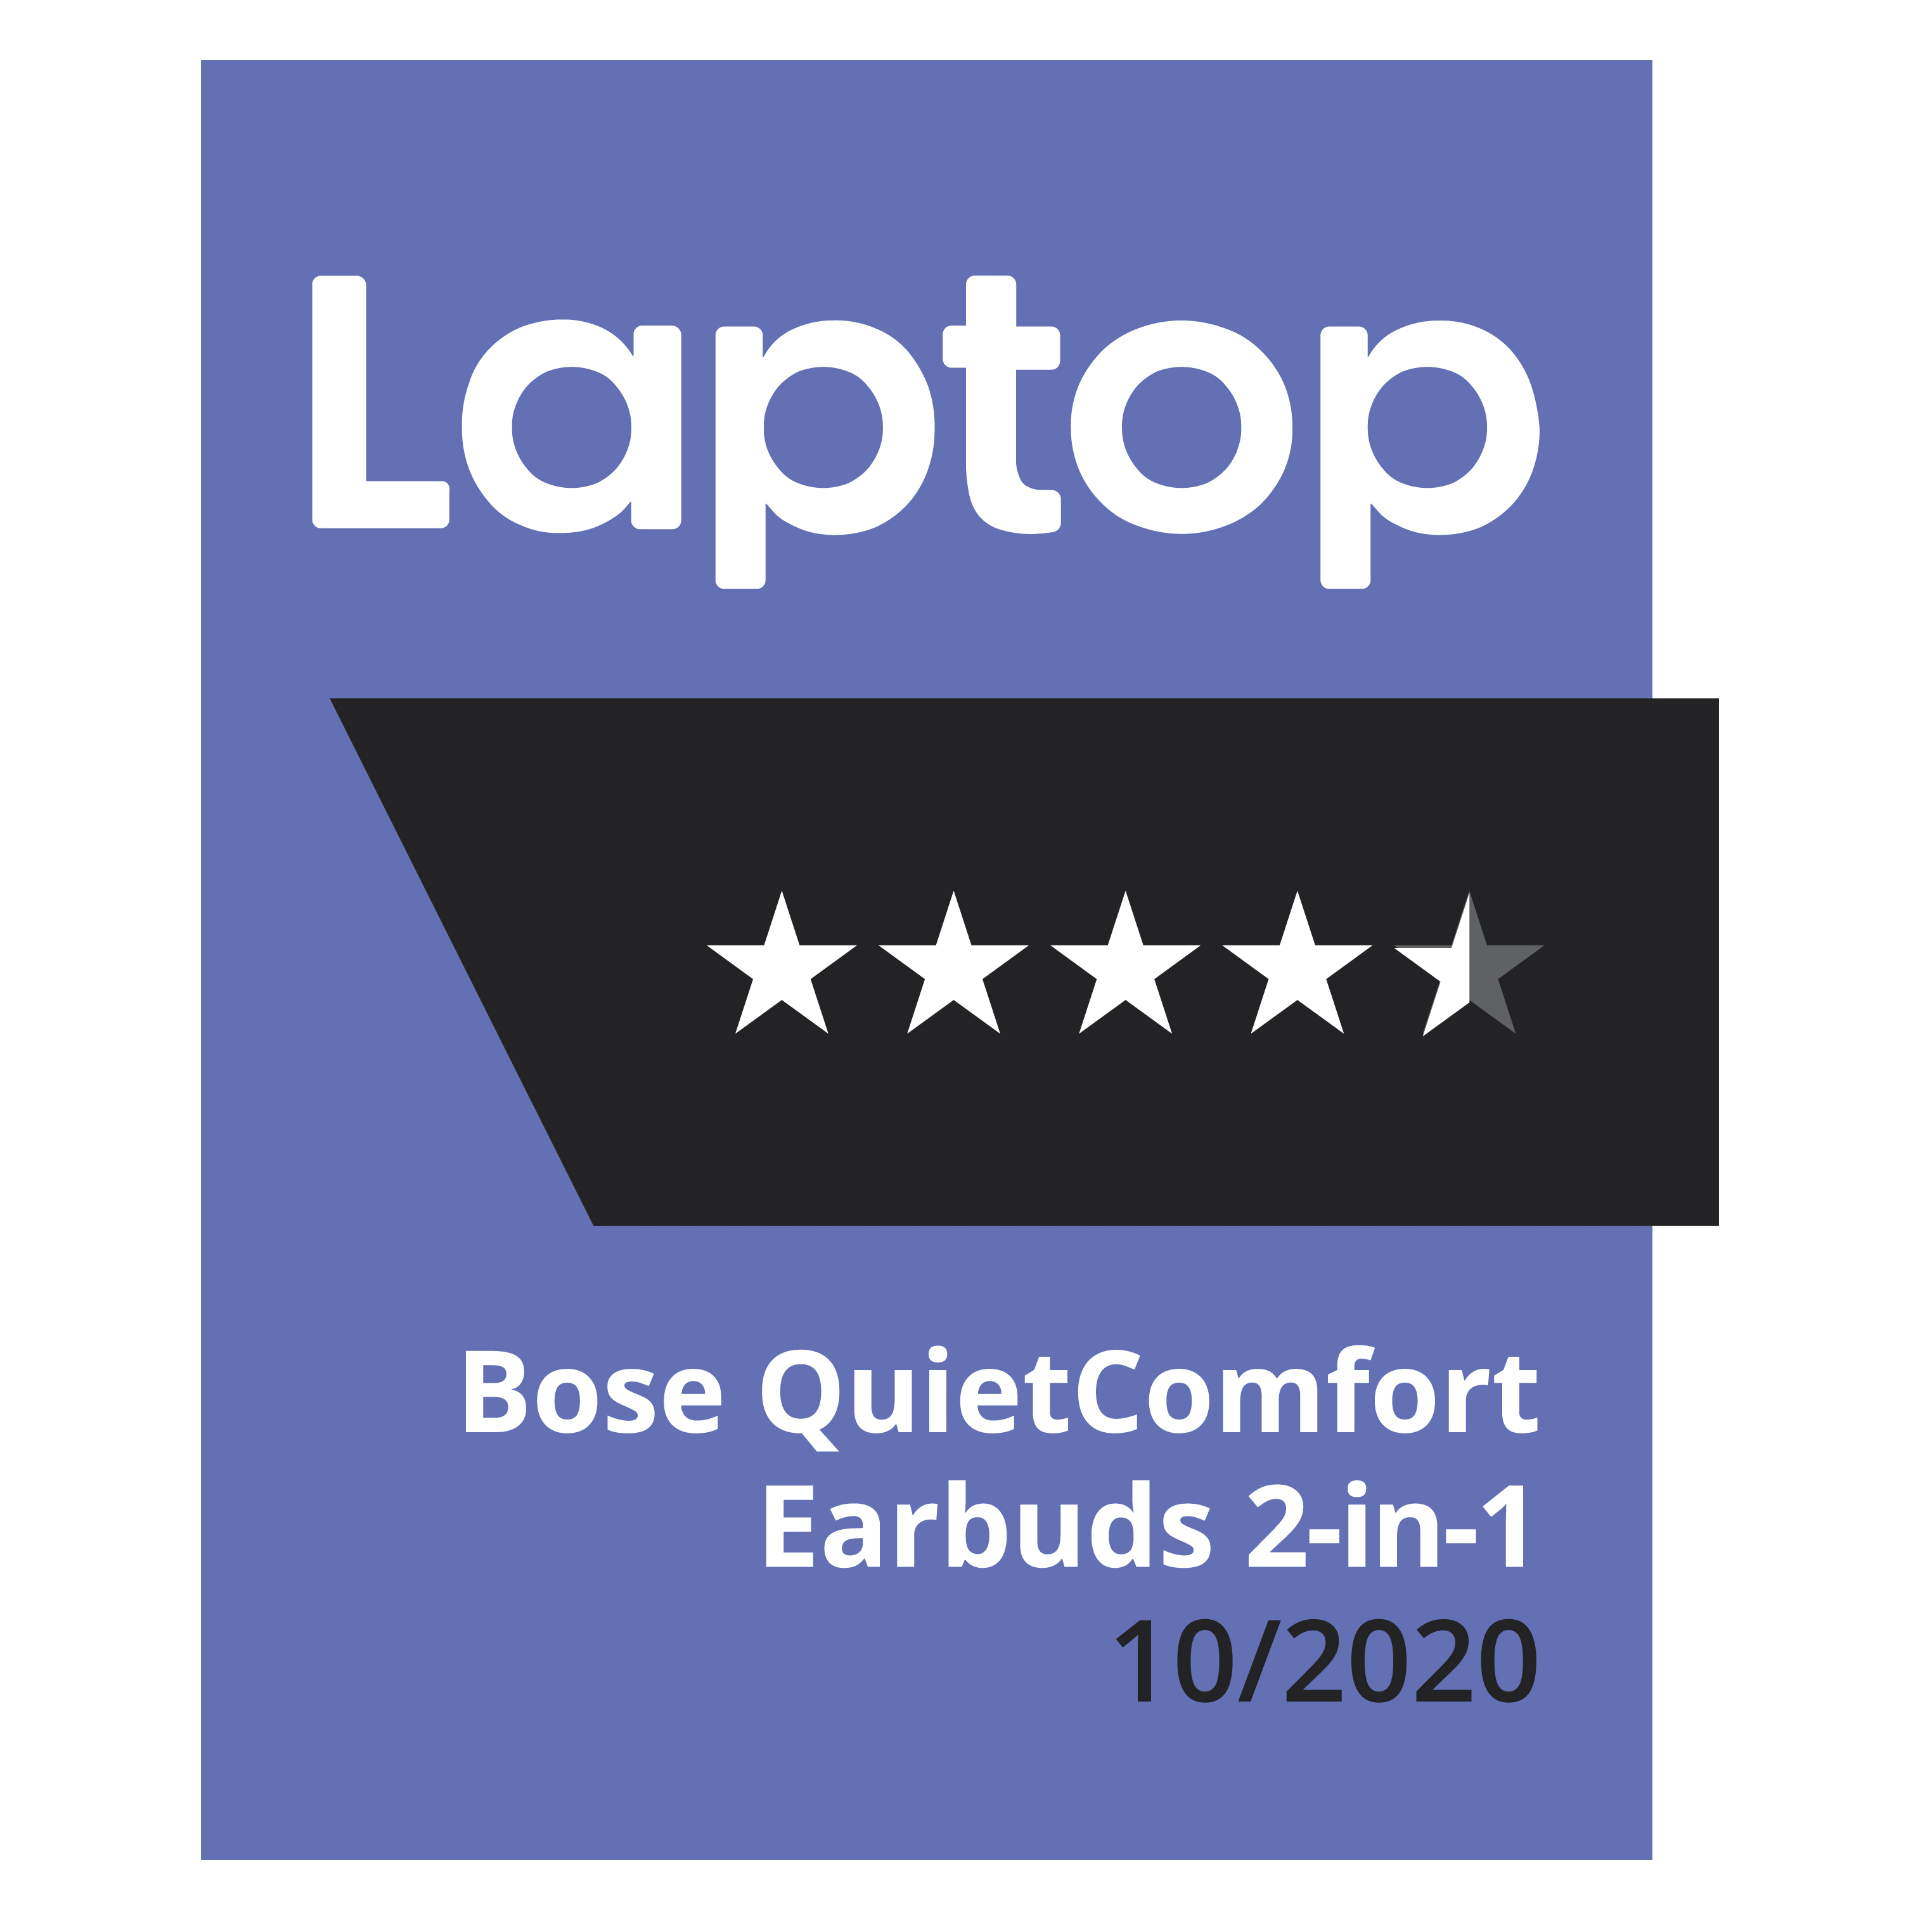 Laptop Magazine, 4.5 stars, Bose QuietComfort Earbuds 2-in-1, October 2020 logo